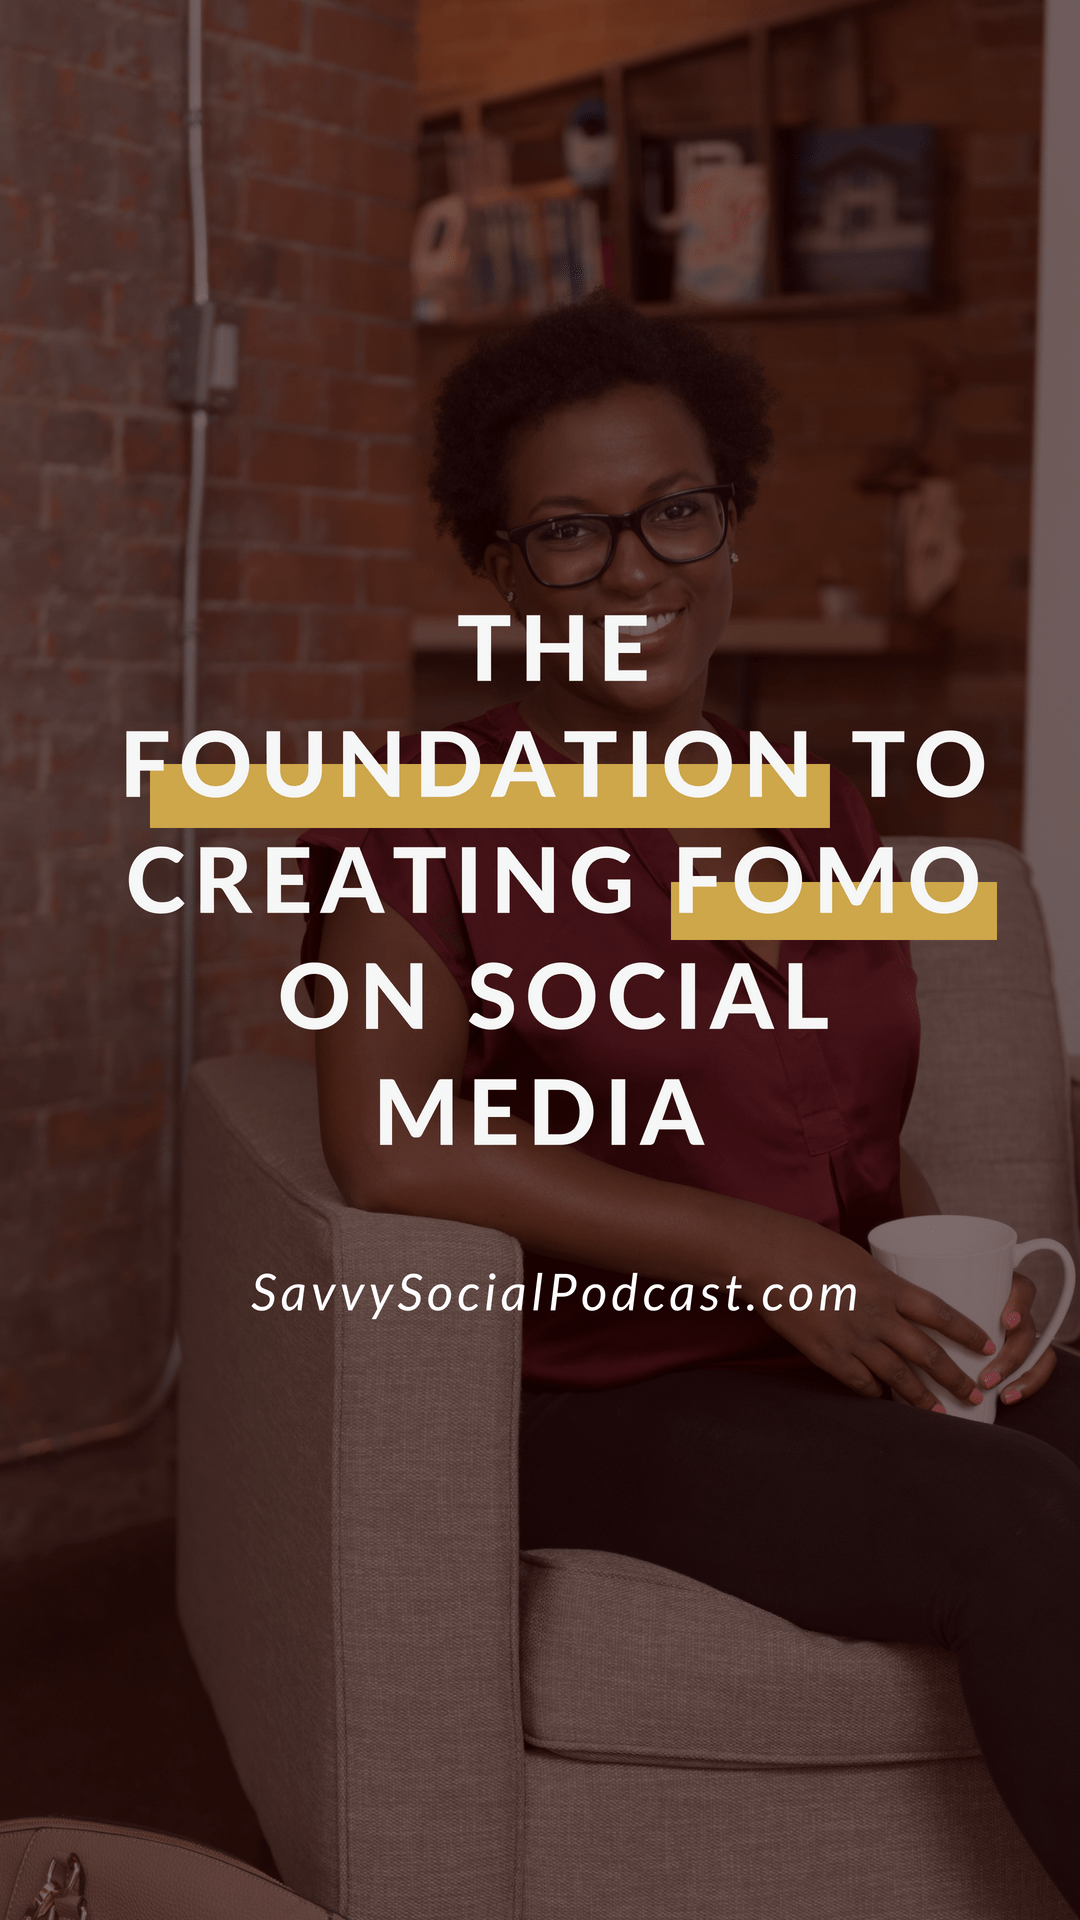 FOMO (the fear of missing out) is real! Listen in to today's podcast to learn how you can use FOMO to create an actionable campaign on social media.